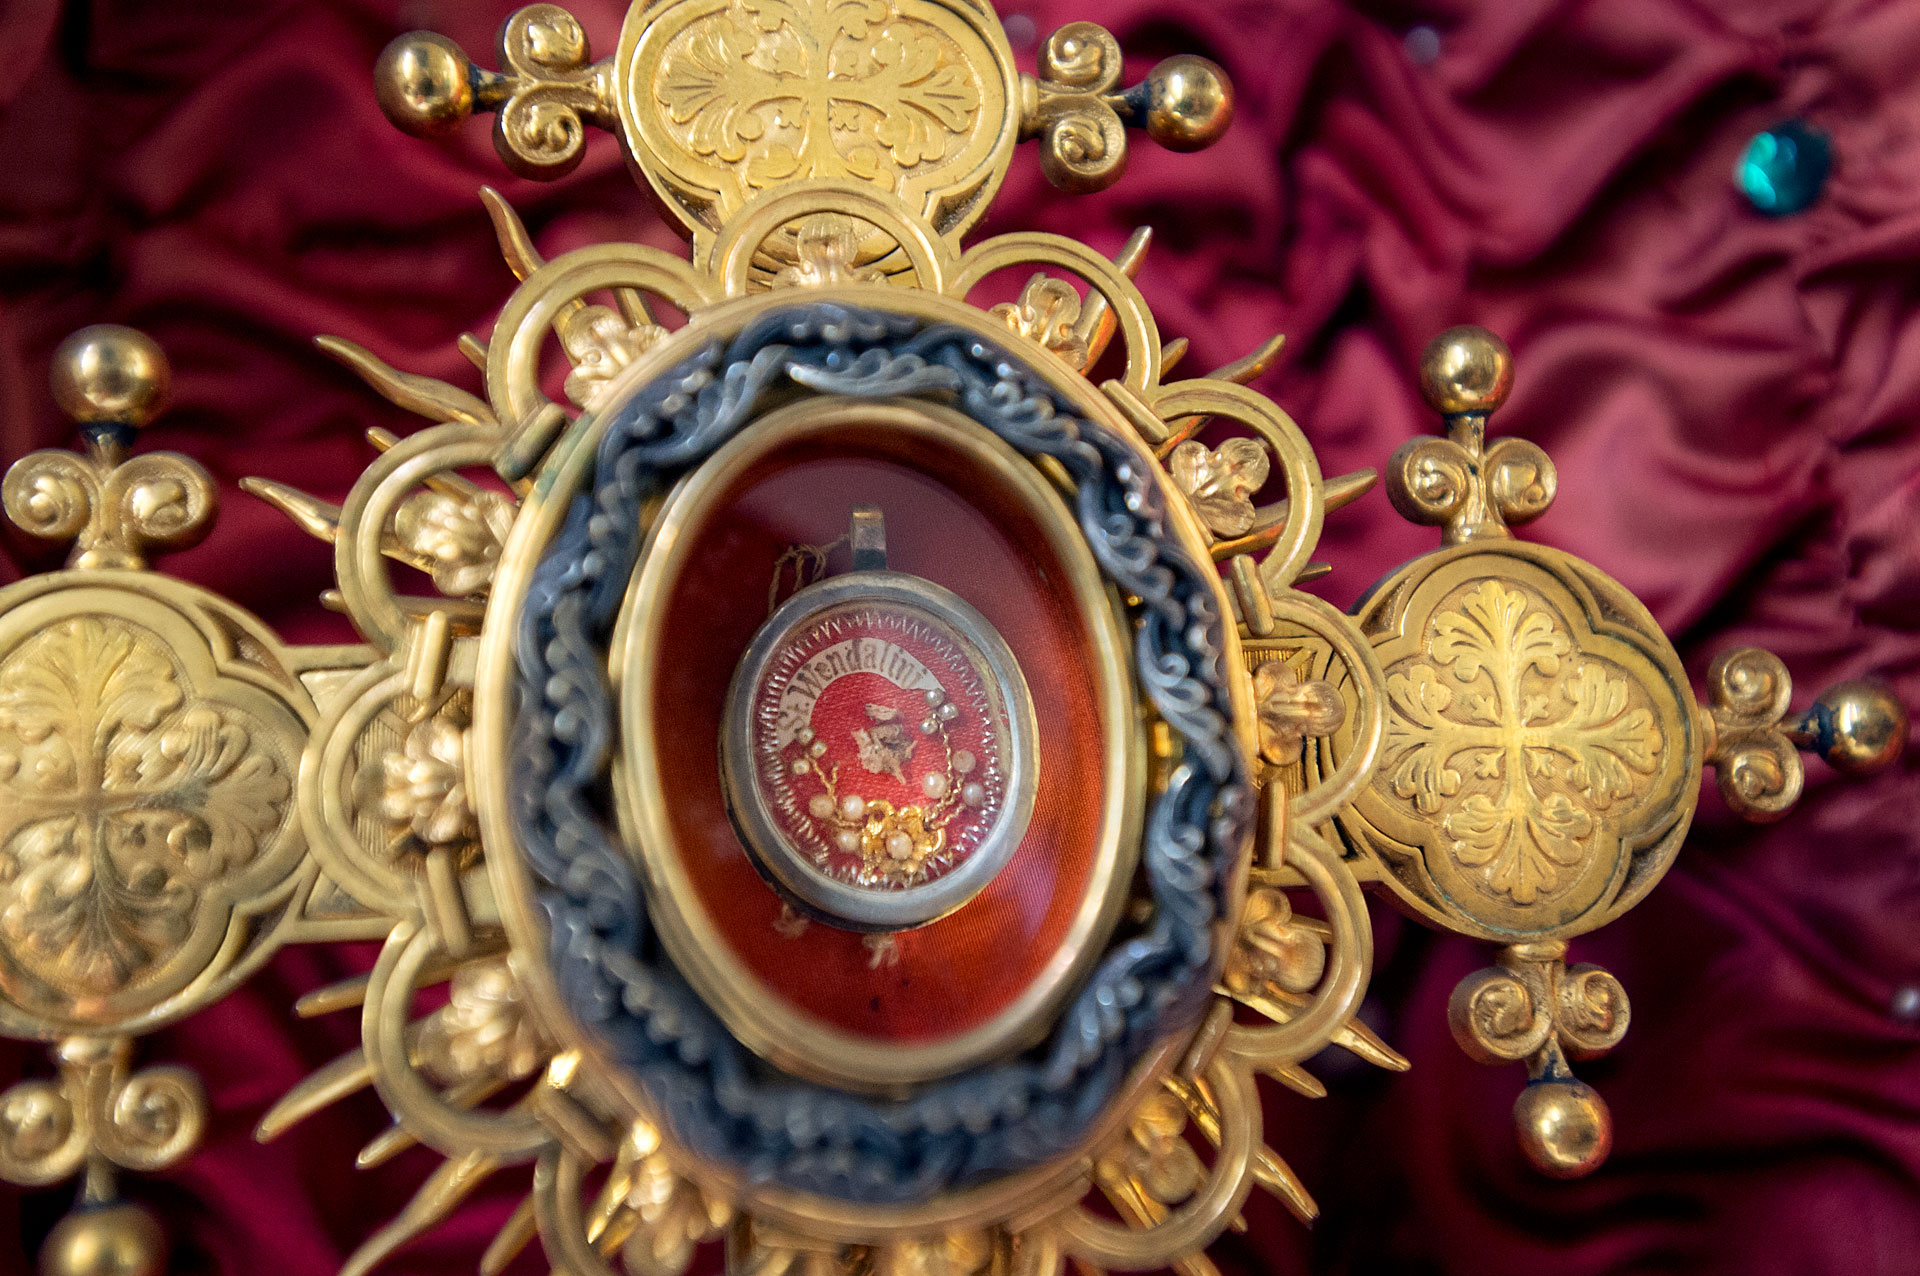 A German film crew visited the hamlet of Perkinsville in March to document the relic of St. Wendelin that is housed at Sacred Heart Church.